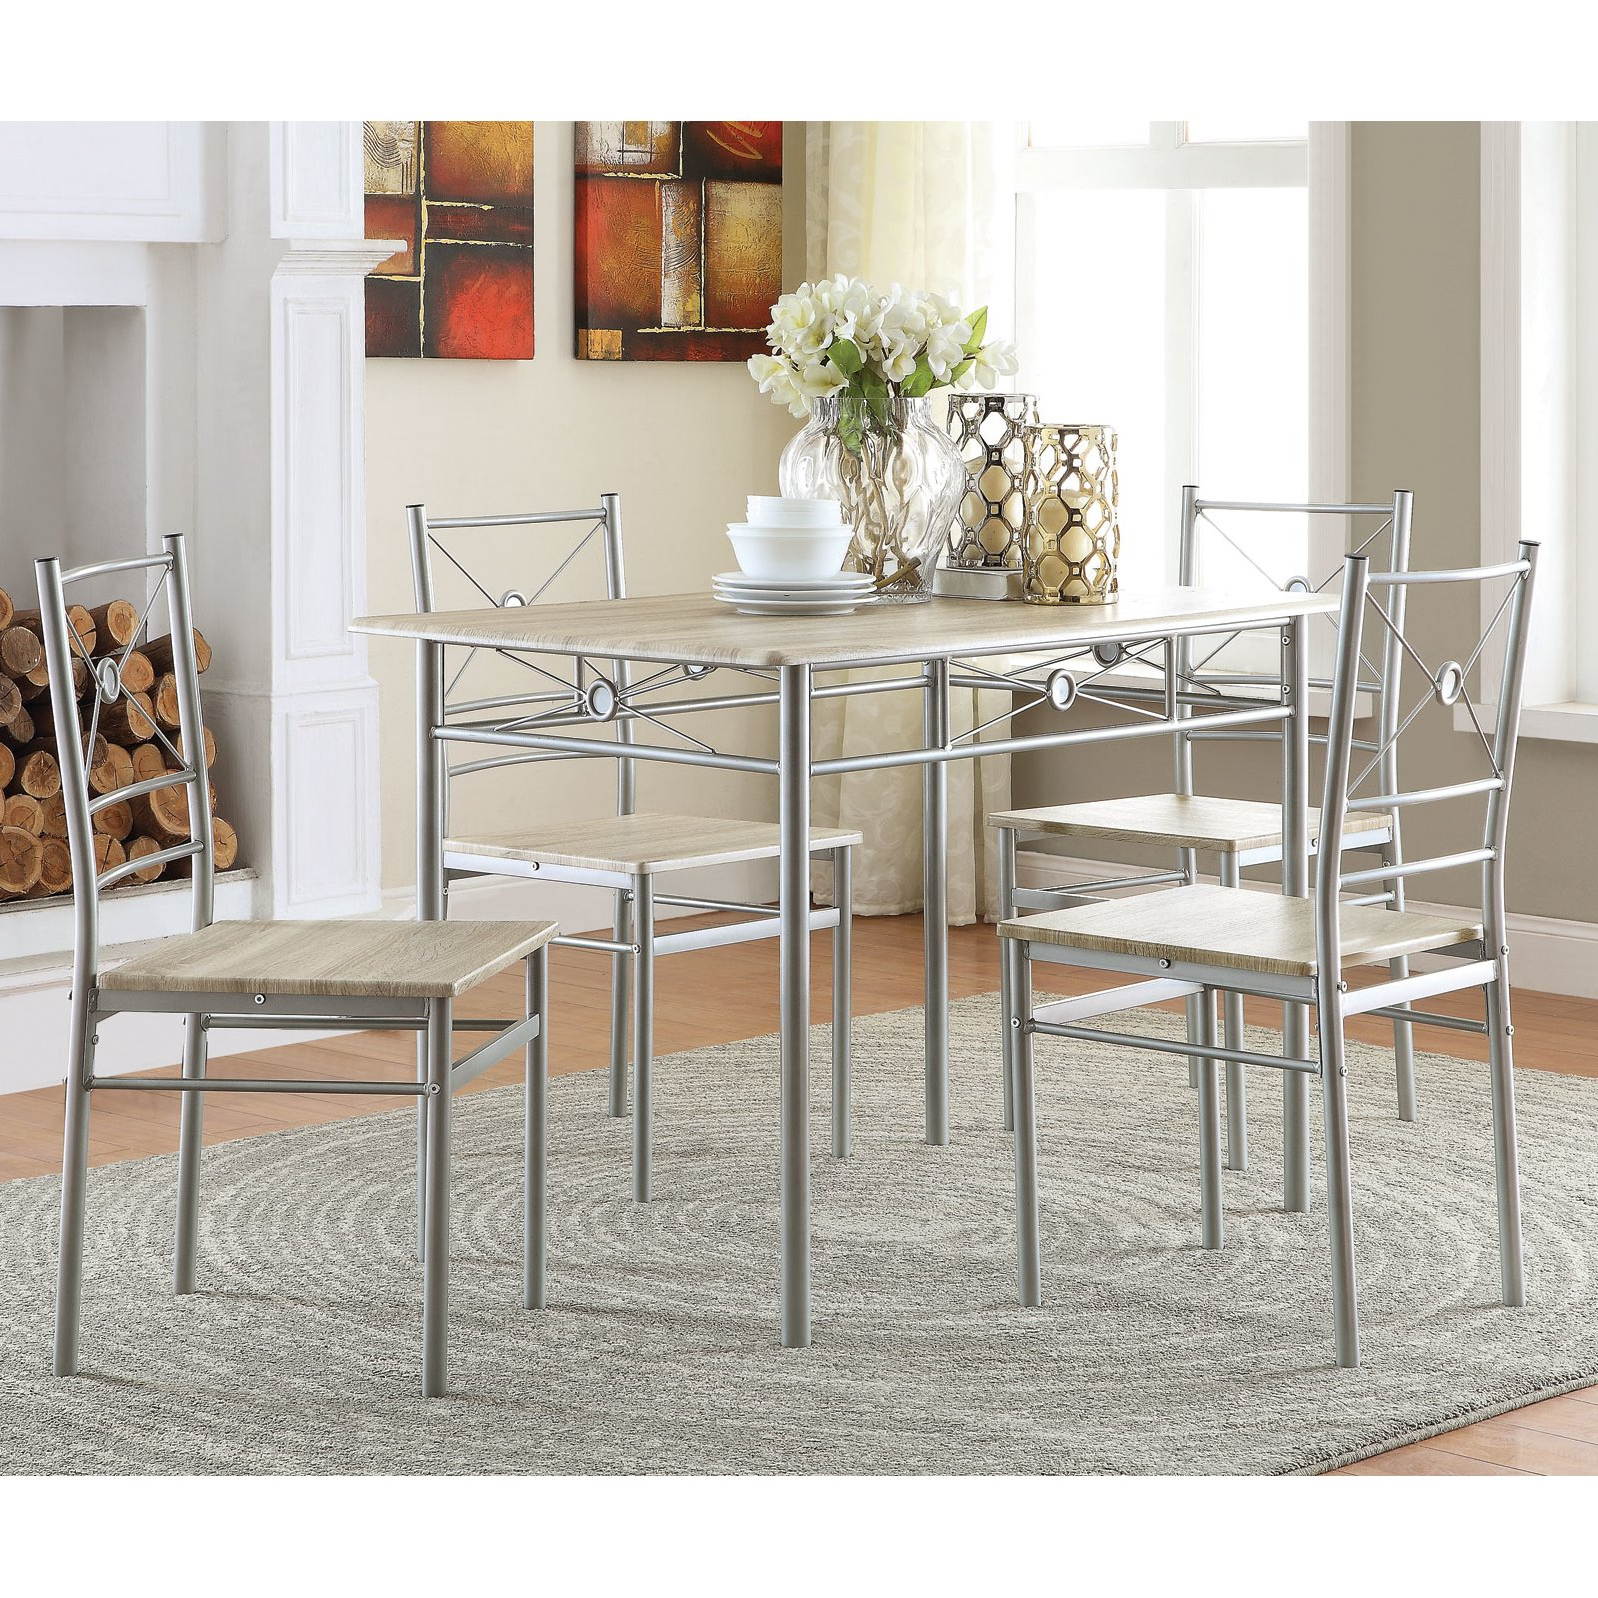 Famous Kieffer 5 Piece Dining Table And Chairs Beautiful Kitchen Room With Kieffer 5 Piece Dining Sets (View 2 of 25)